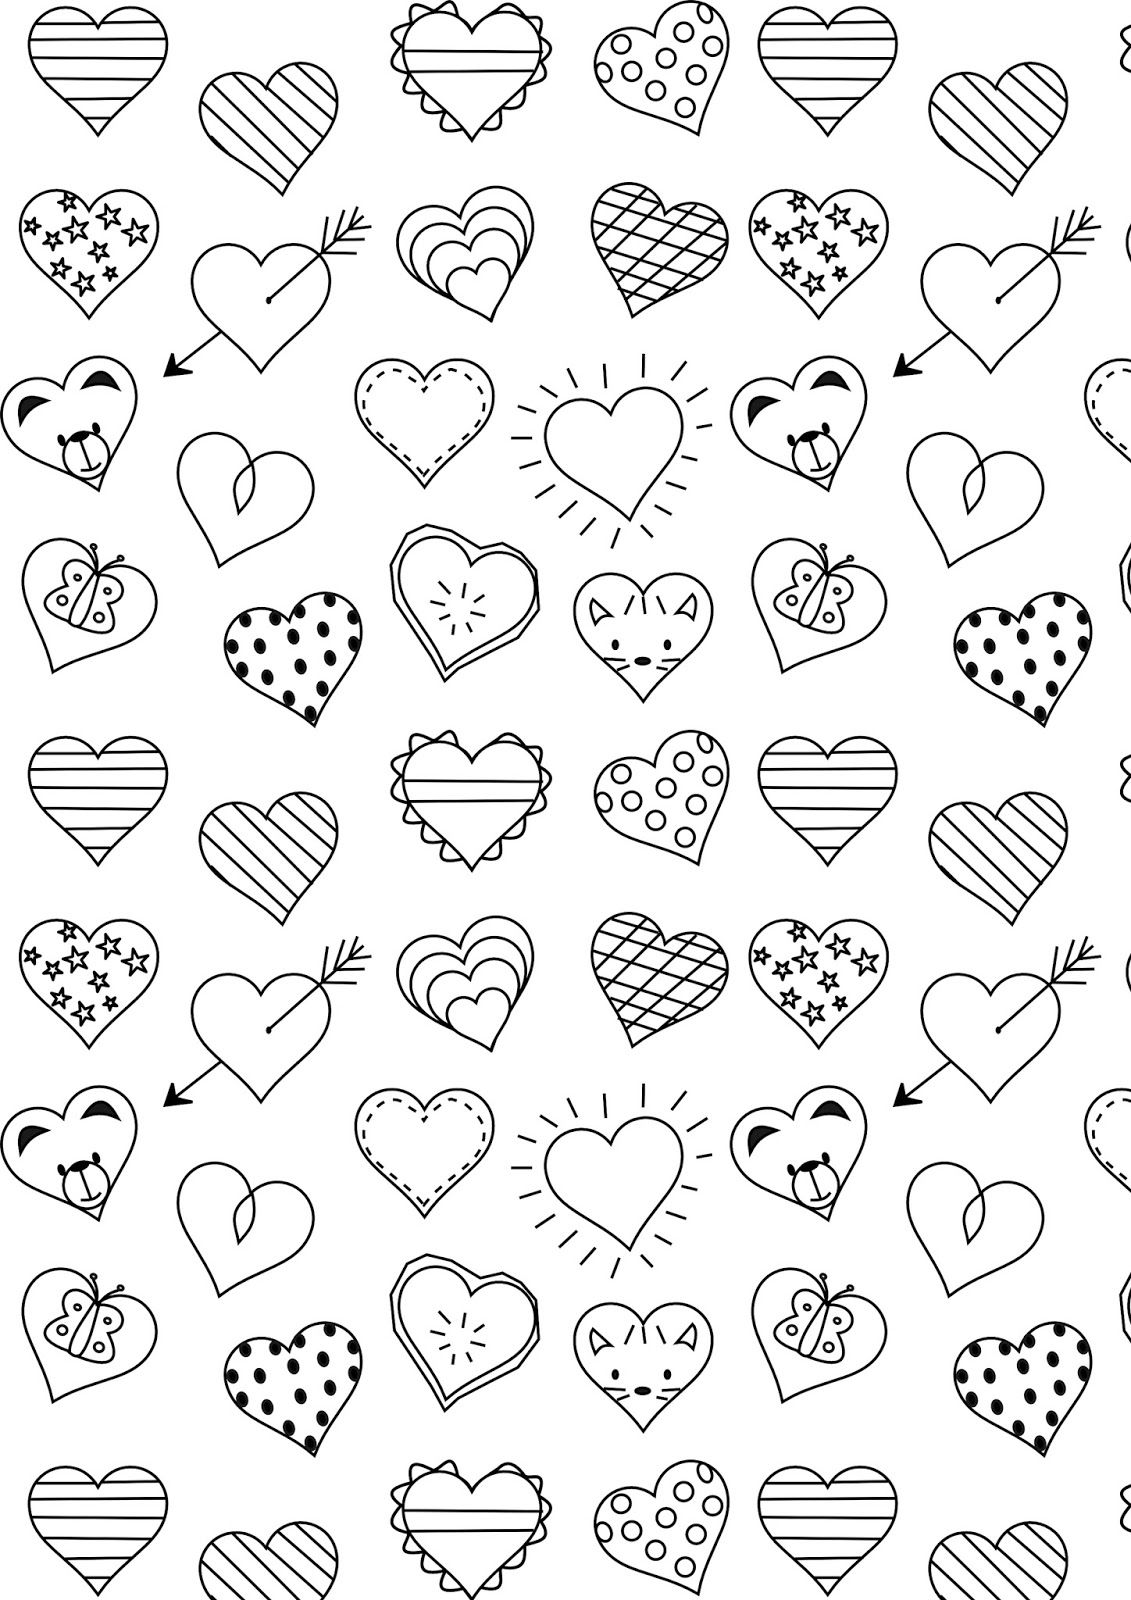 photograph relating to Free Printable Heart Coloring Pages named Cost-free printable center coloring web site - ausdruckbare